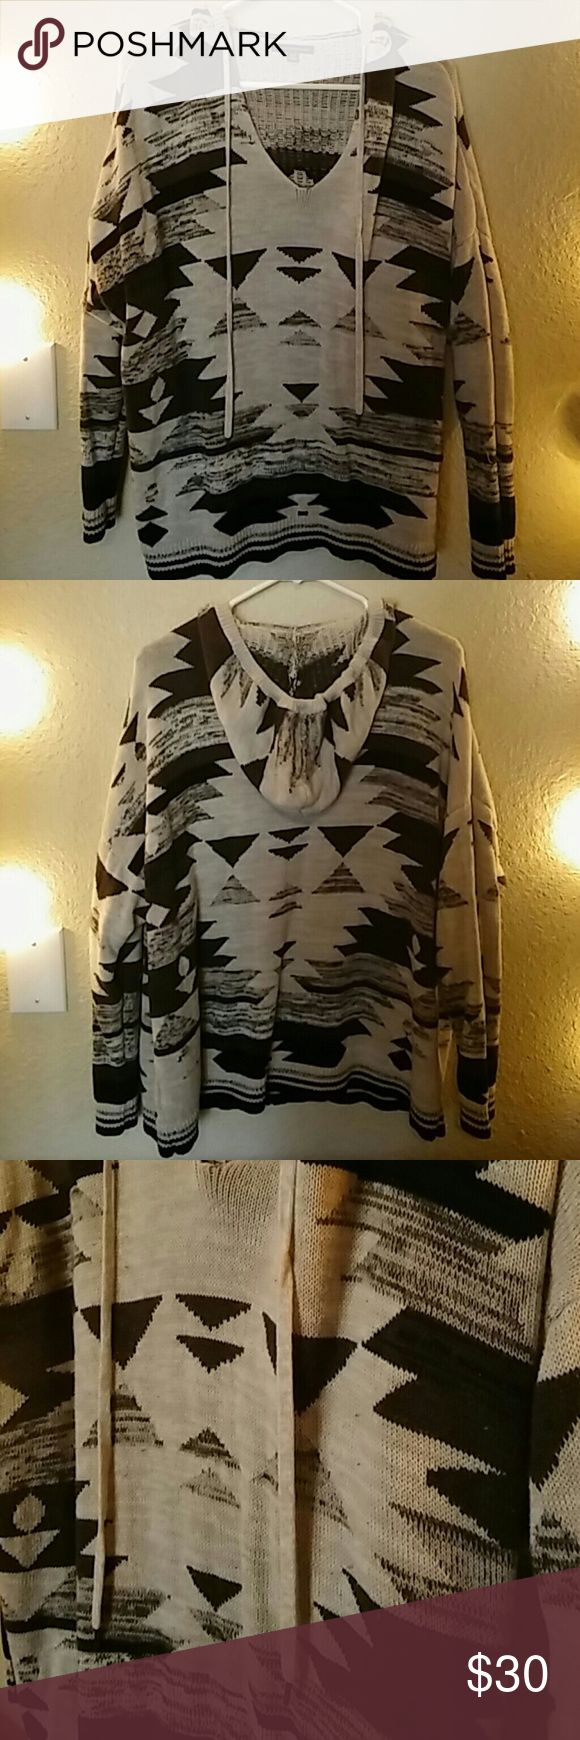 American Eagle Tribal Print Sweater EUC. Size XL. American Eagle black, gray, oatmeal tribal print sweater. This oversized 100% cotton knit poncho sweater with hoodie will keep you warm this winter. Excellent condition, no rips, holes, or stains. Make me an offer. American Eagle Outfitters Sweaters Shrugs & Ponchos